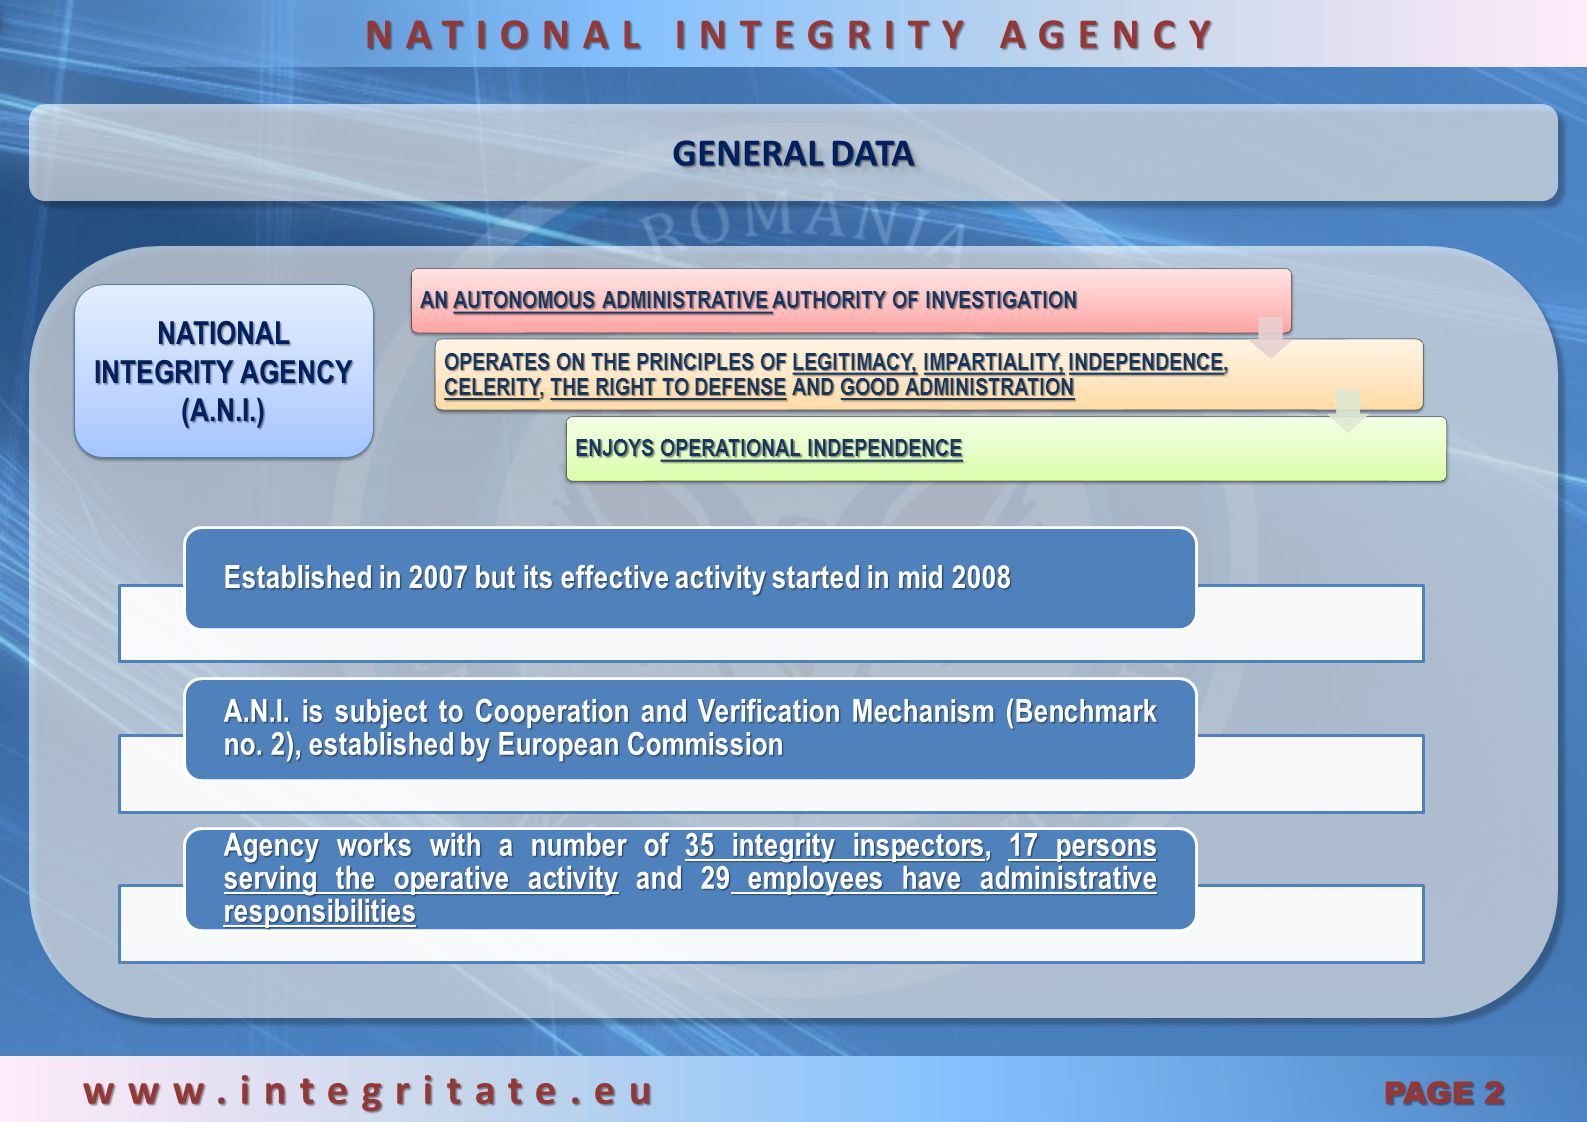 www.integritate.eu PAGE 22 NATIONAL INTEGRITY AGENCY THANK YOU FOR YOUR TIME.